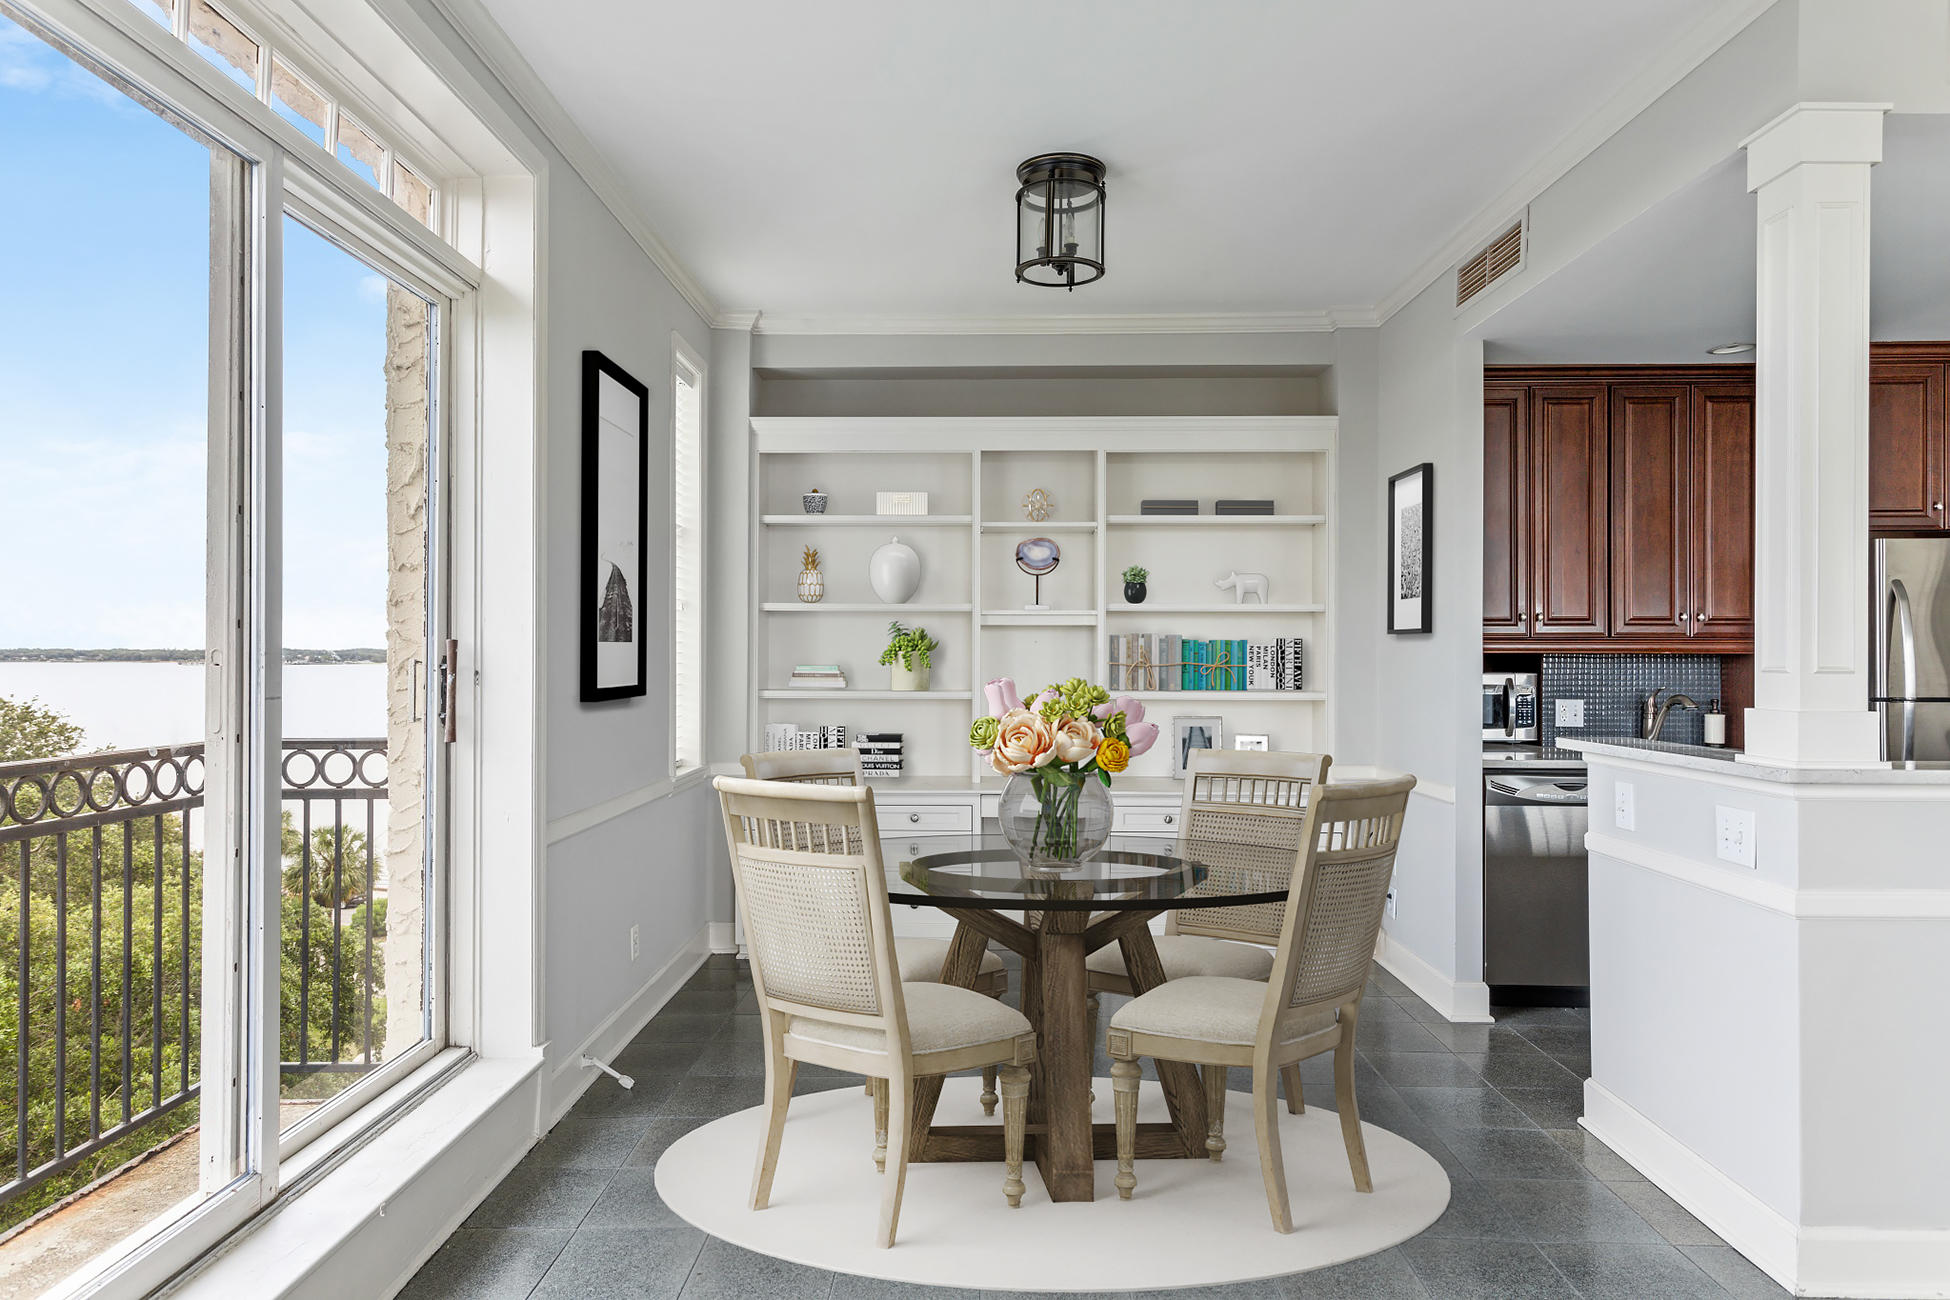 South of Broad Homes For Sale - 1 King, Charleston, SC - 13